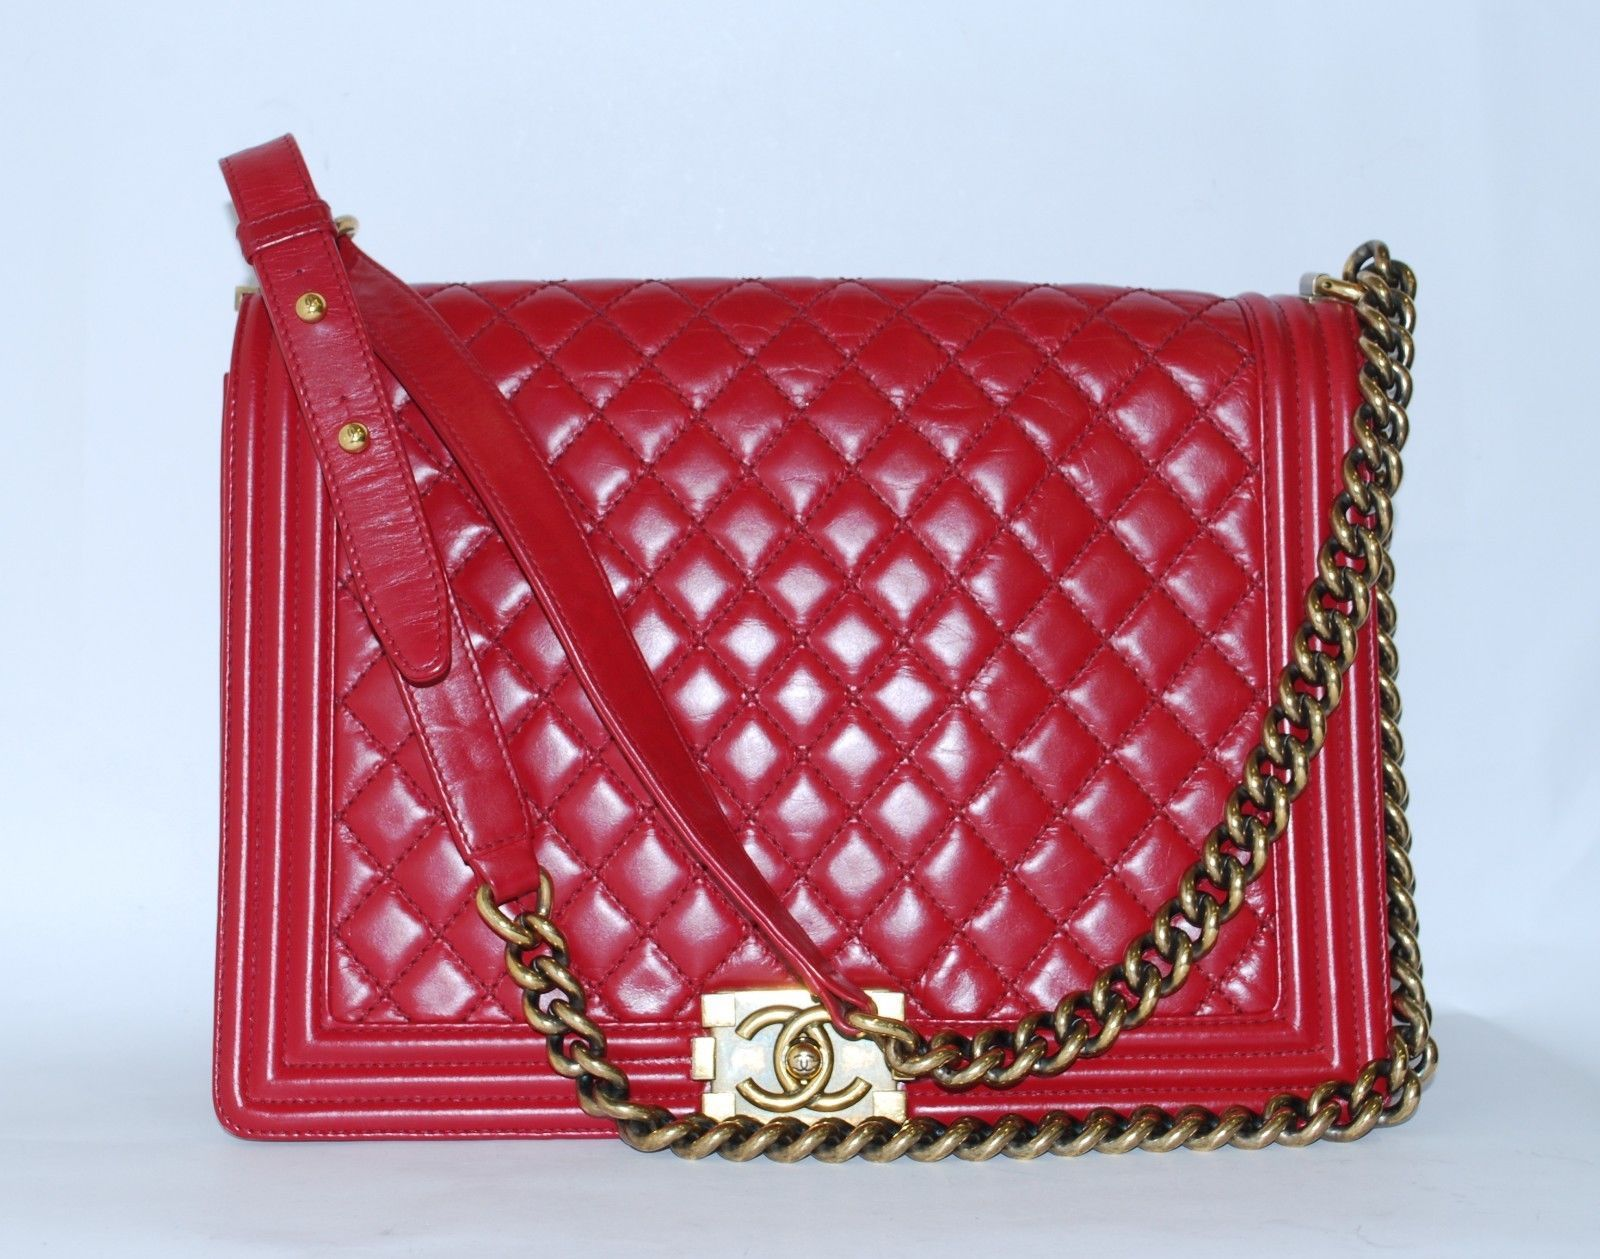 6dcf742d90e8 CHANEL Boy Red CC Quilted Leather Handbag and 50 similar items